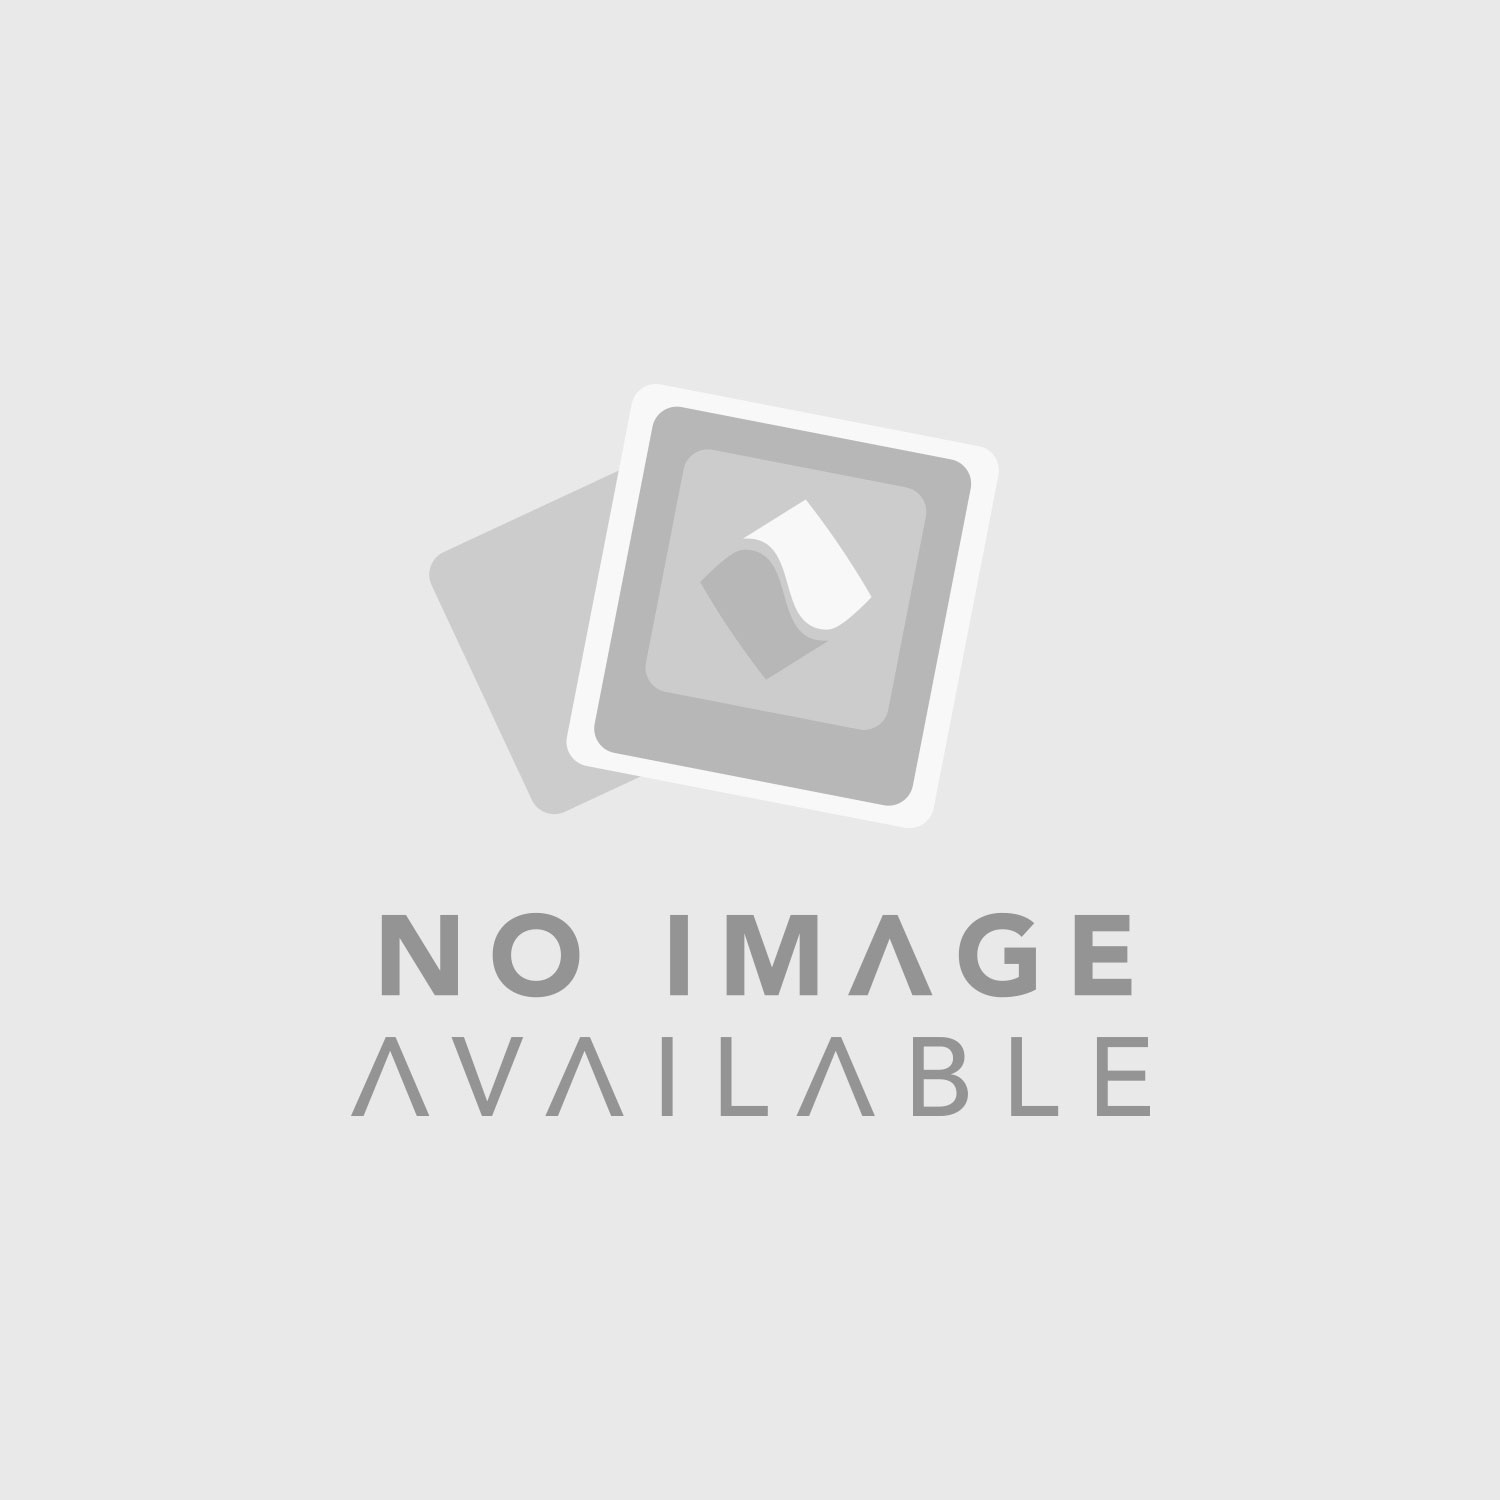 D'Addario EXL140 Electric Guitar Strings (10-52)